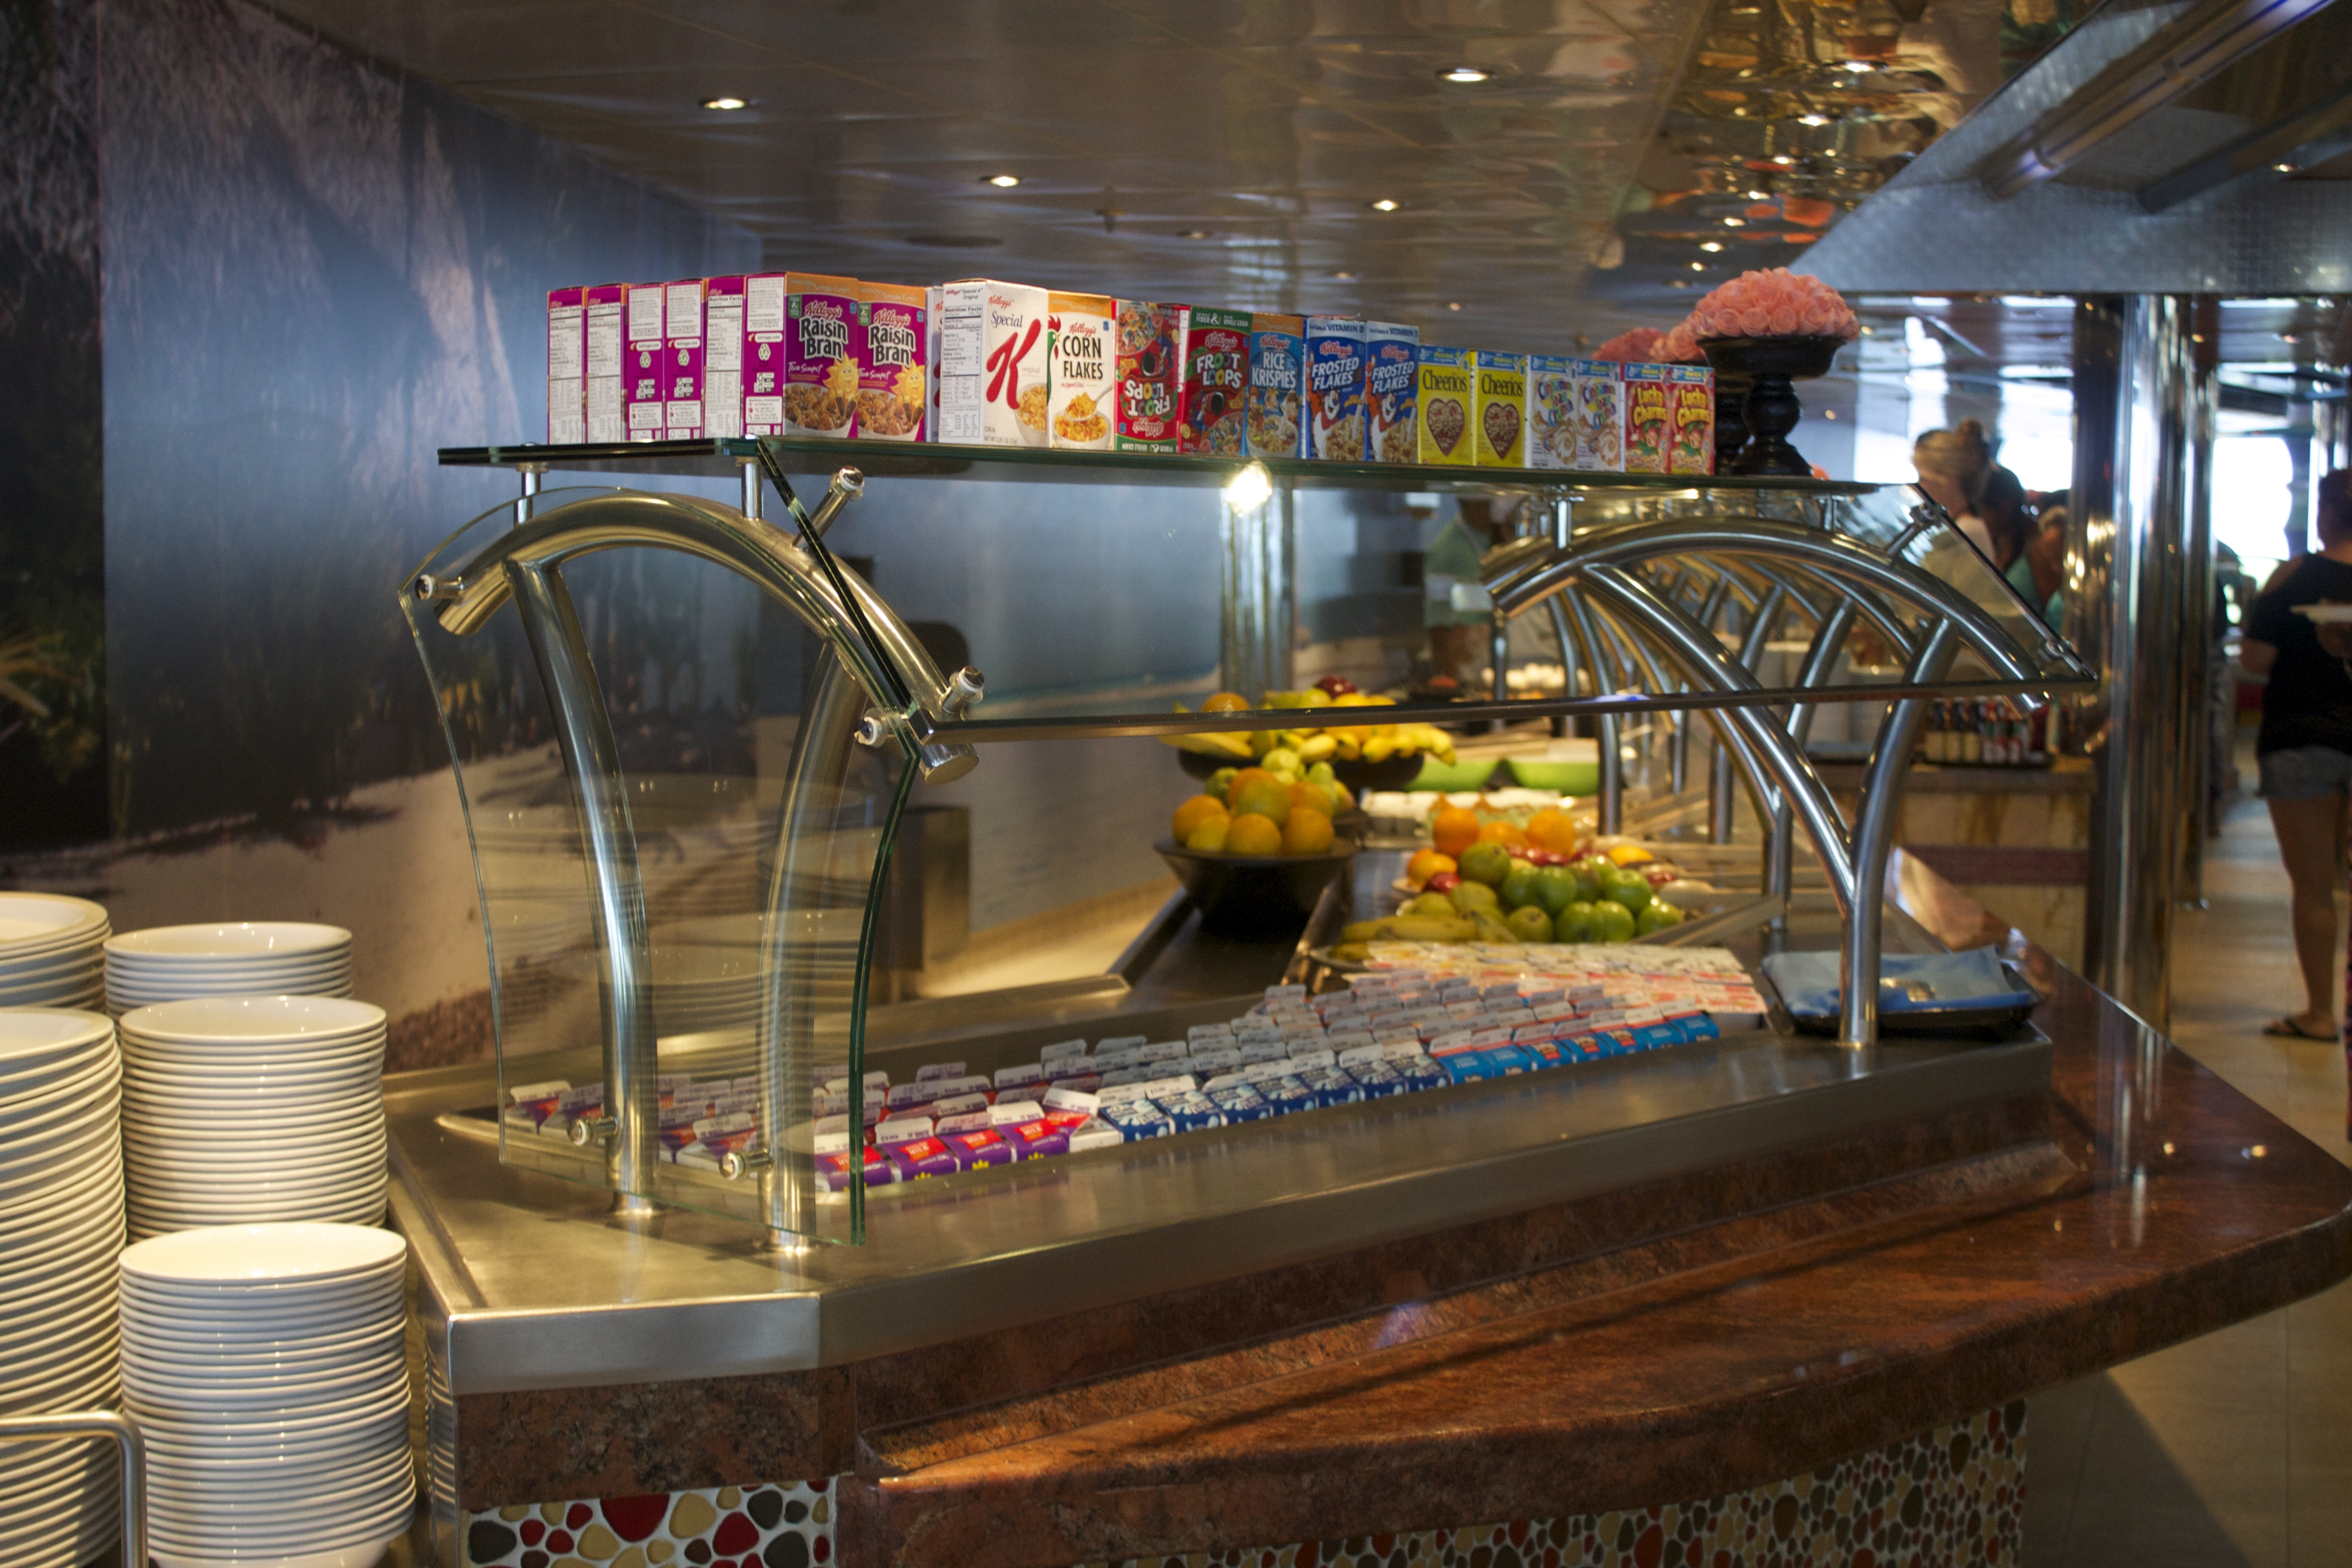 Carnival Fantasy Lido Buffet Photos - 61 Pictures - Cruise Critic Carnival cruise food pictures